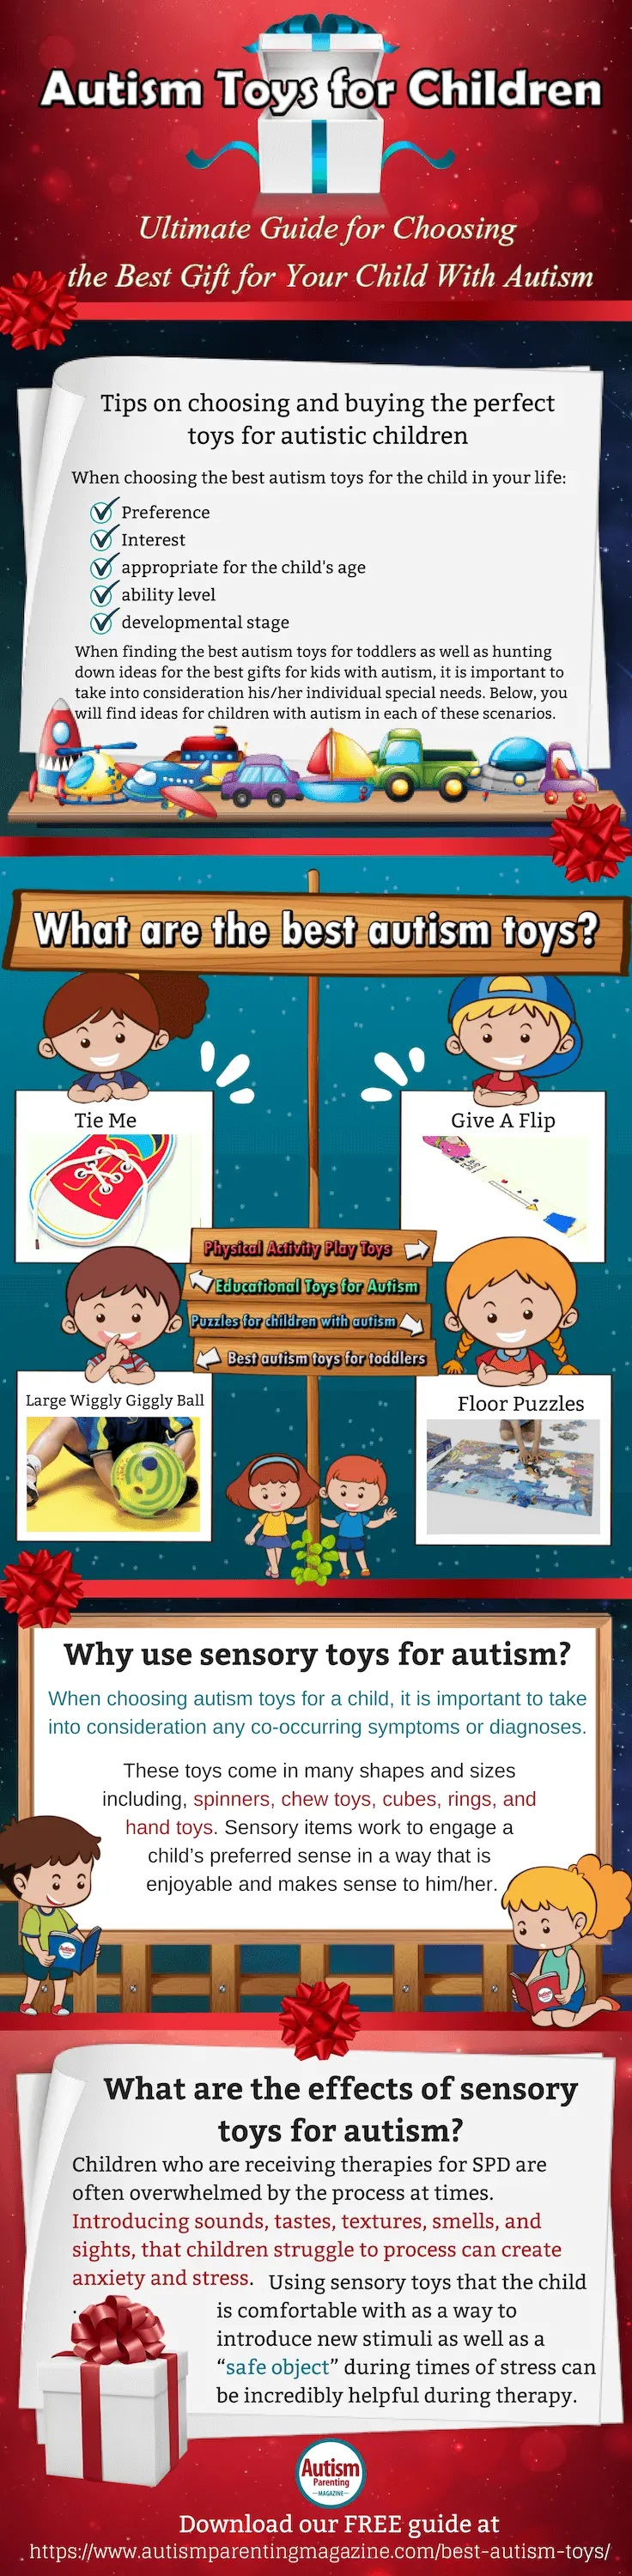 Autism Toys for Children: Ultimate Guide for Choosing the Best Gift for Your Child With Autism #infographic